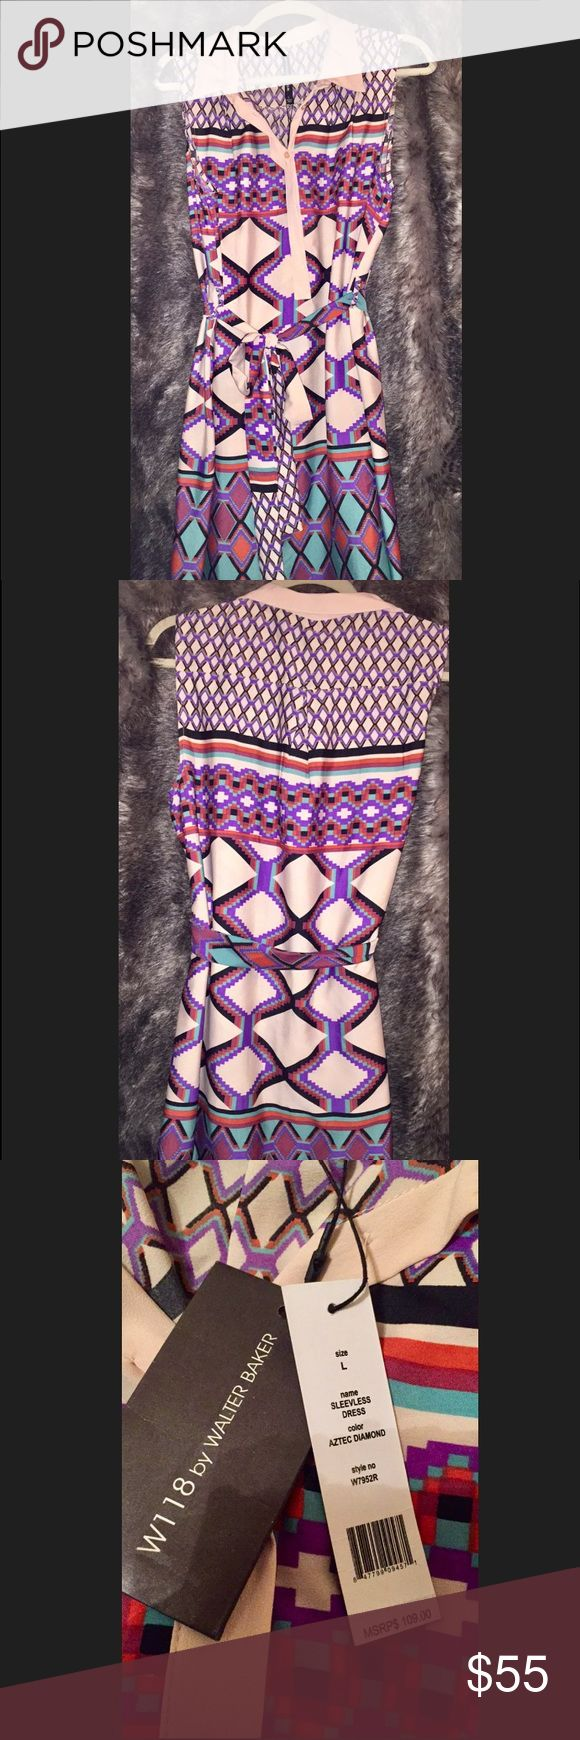 W118 by Walter Baker• Aztec Diamond•Dress• W118 by Walter Baker• Aztec Diamond•Dress• Sleeveless• New with Tags•Size: Large• GORGEOUS!!!! Make an offer!!• W118 by Walter Baker Dresses